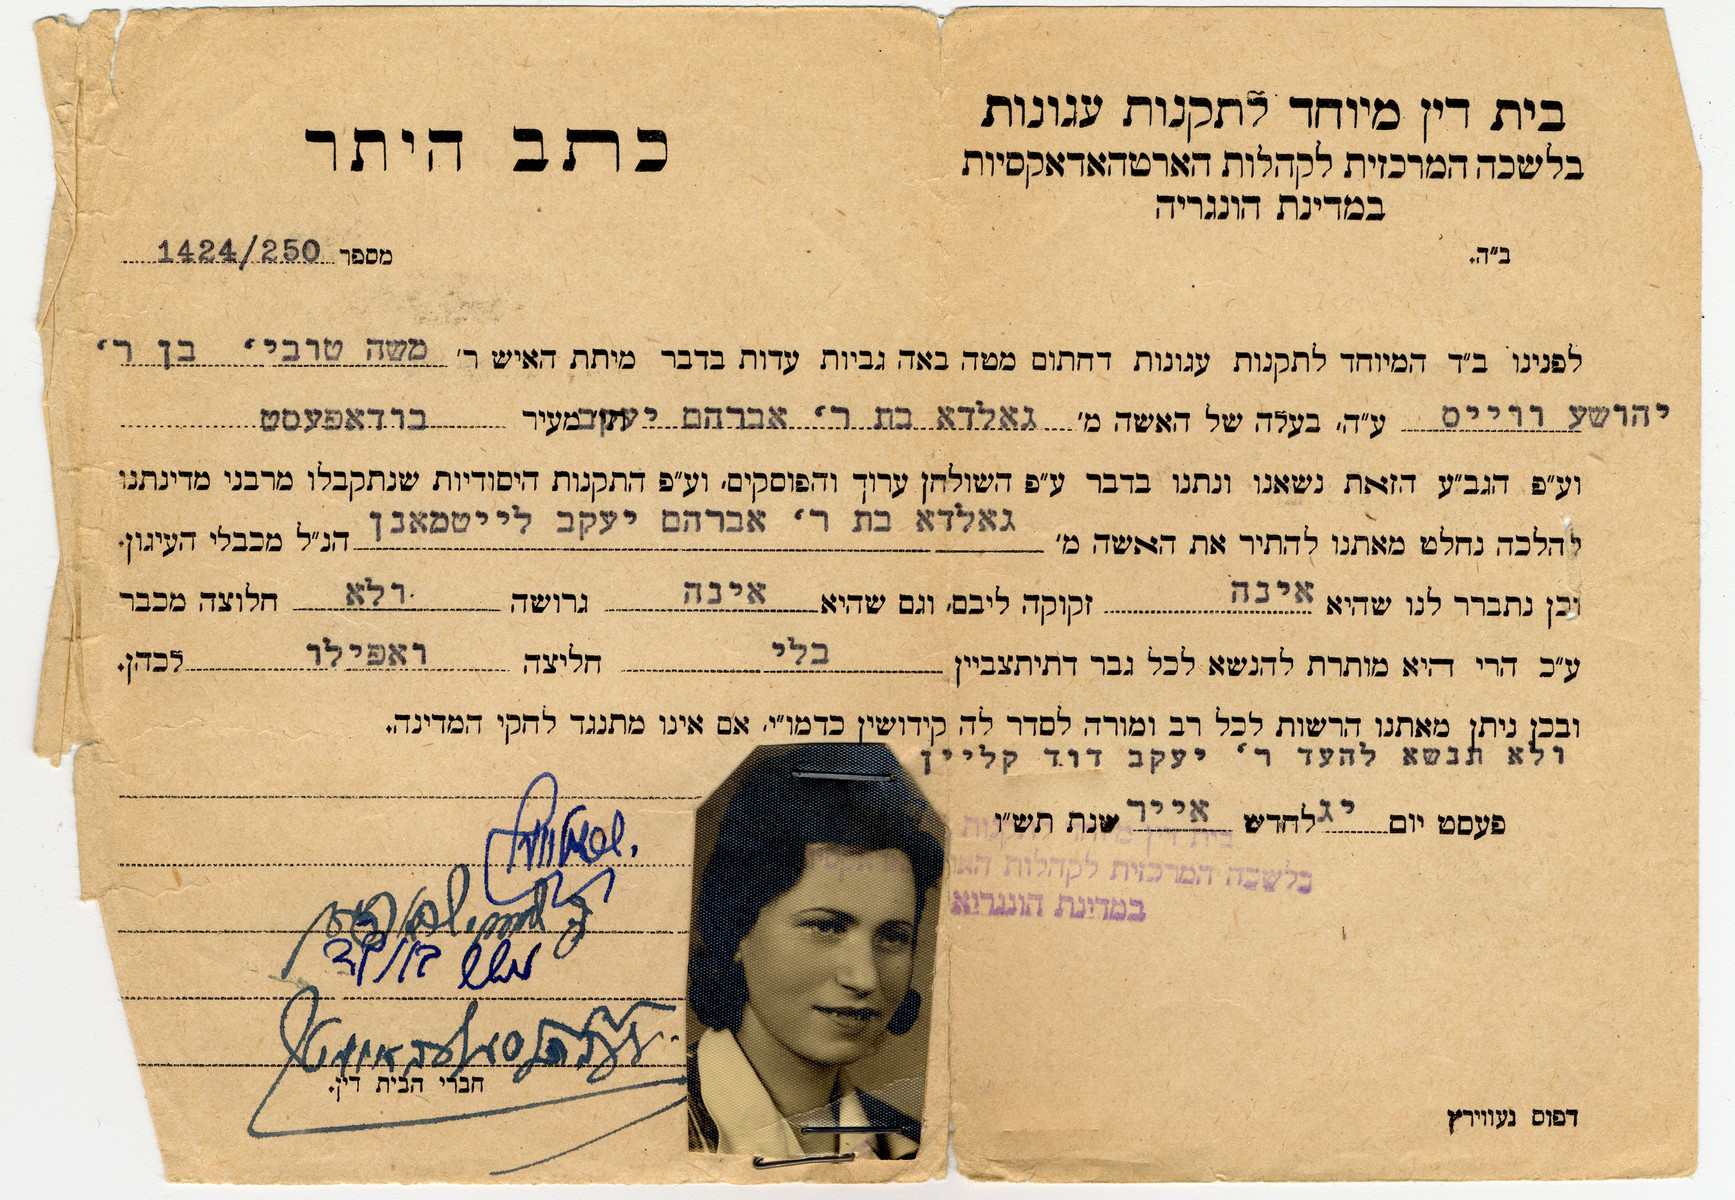 Document issued to Golda Leitman Weiss by the Orthodox Rabbinic Court in Budapest testifying that her husband Moshe Tuvia Weiss passed away and that she was free to remarry.